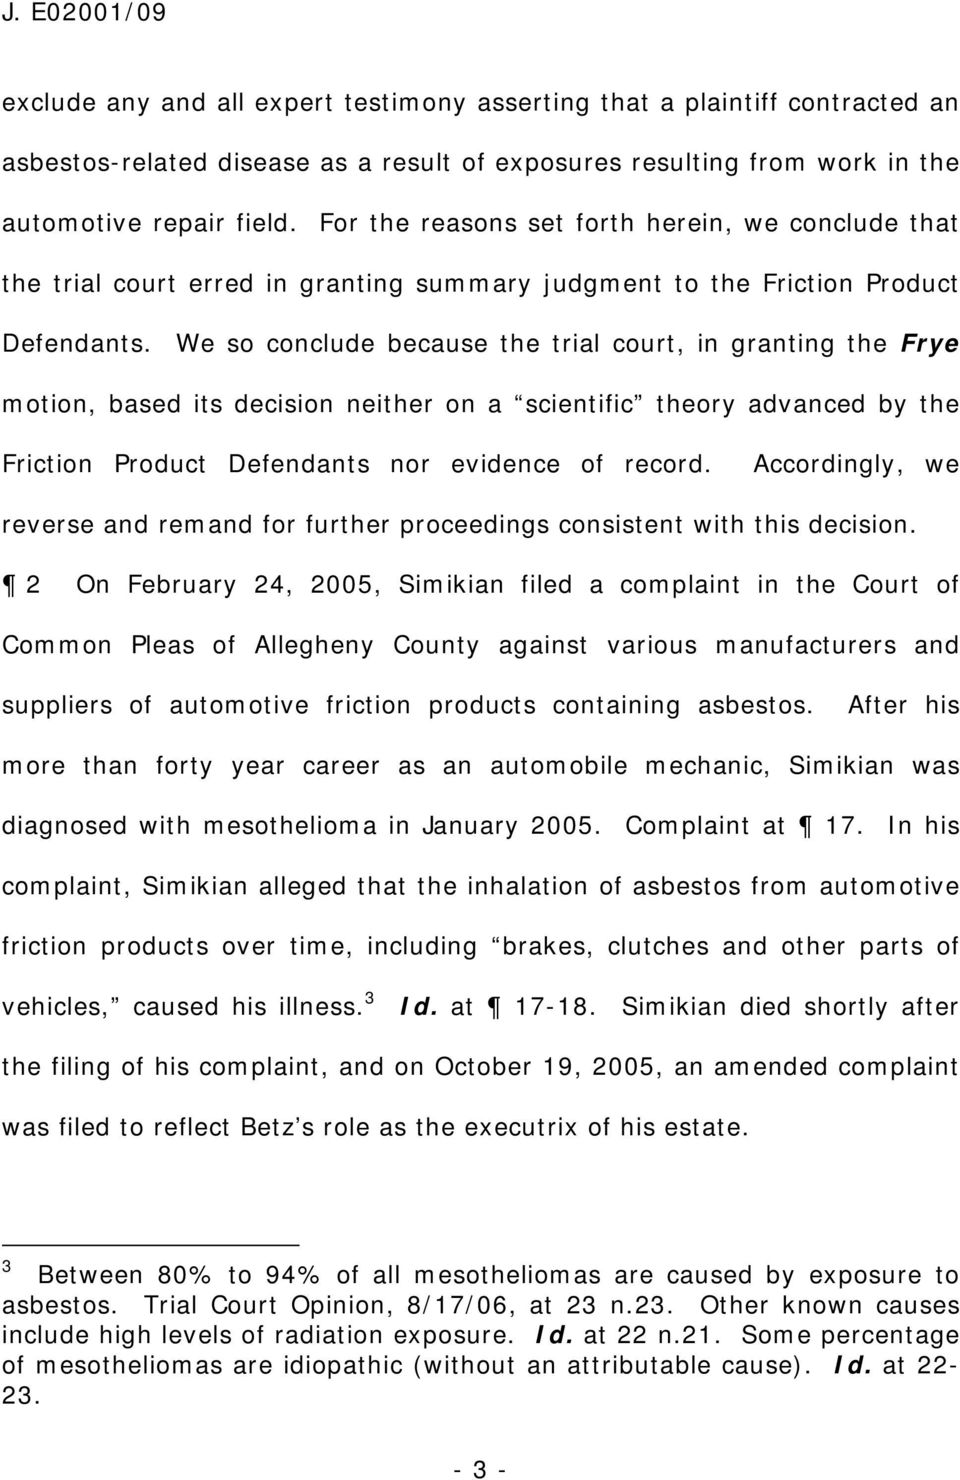 We so conclude because the trial court, in granting the Frye motion, based its decision neither on a scientific theory advanced by the Friction Product Defendants nor evidence of record.